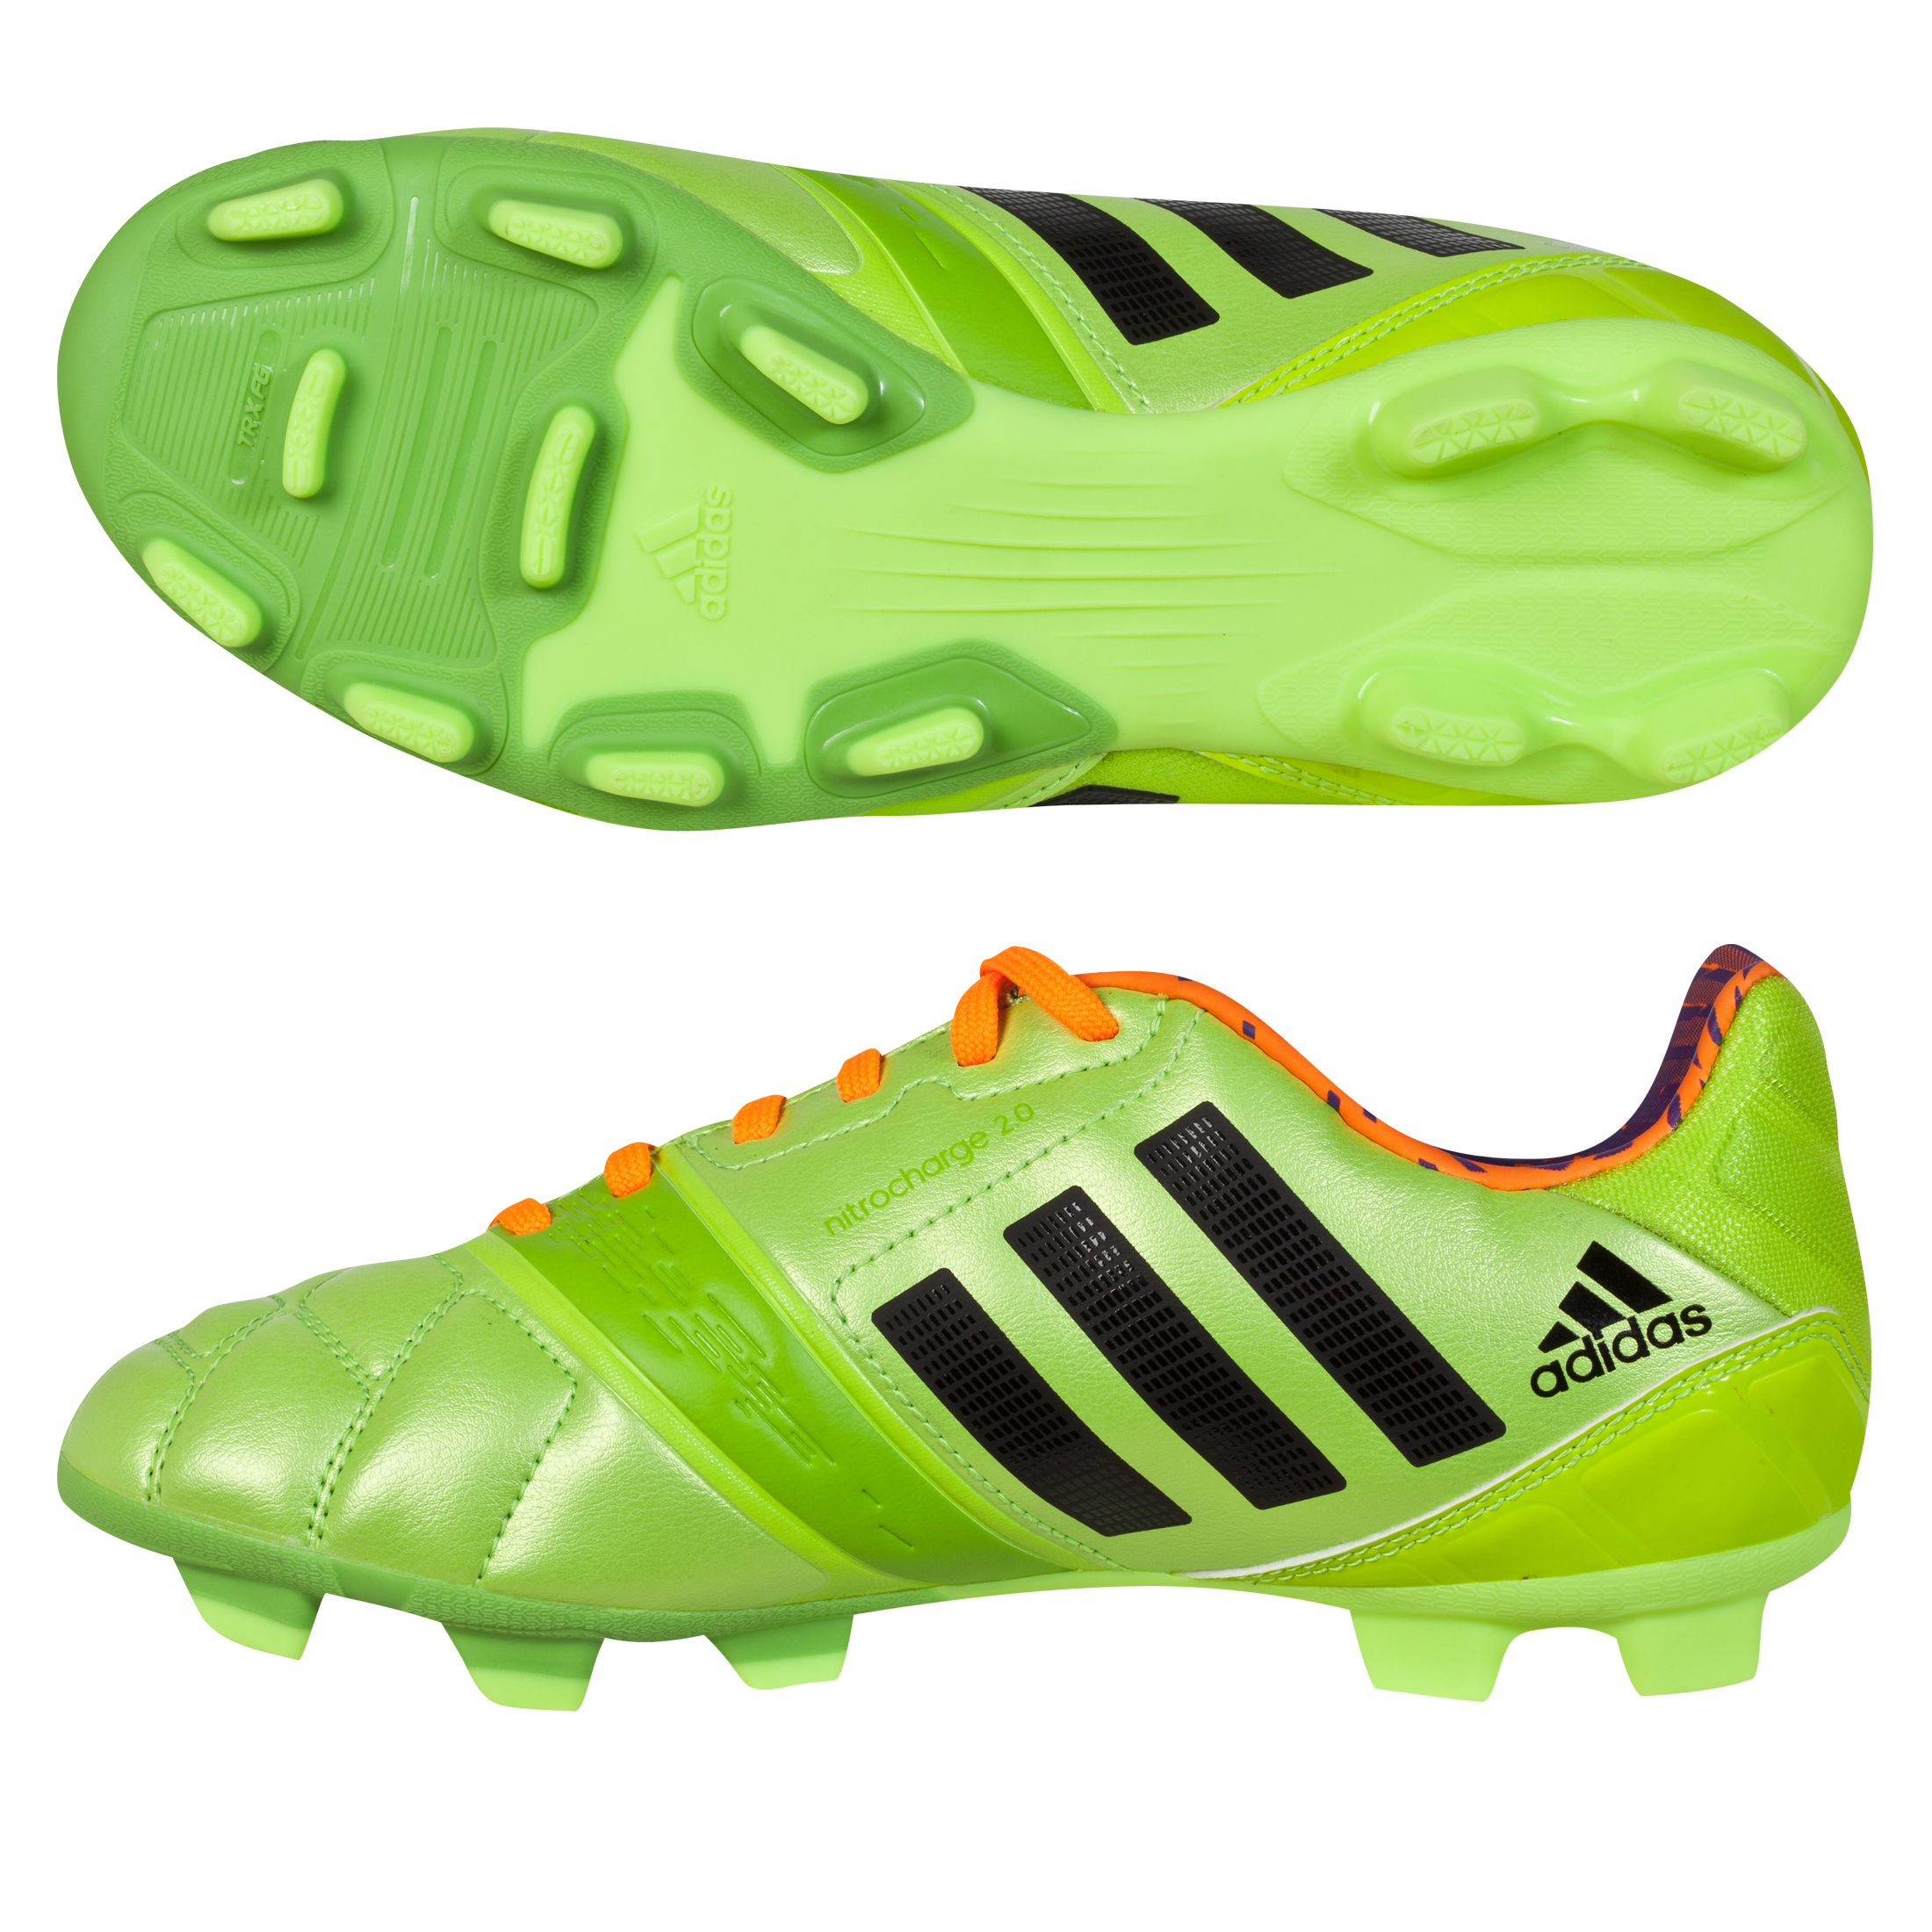 Adidas Nitrocharge 2.0 TRX Firm Ground Football Boots - Kids Green